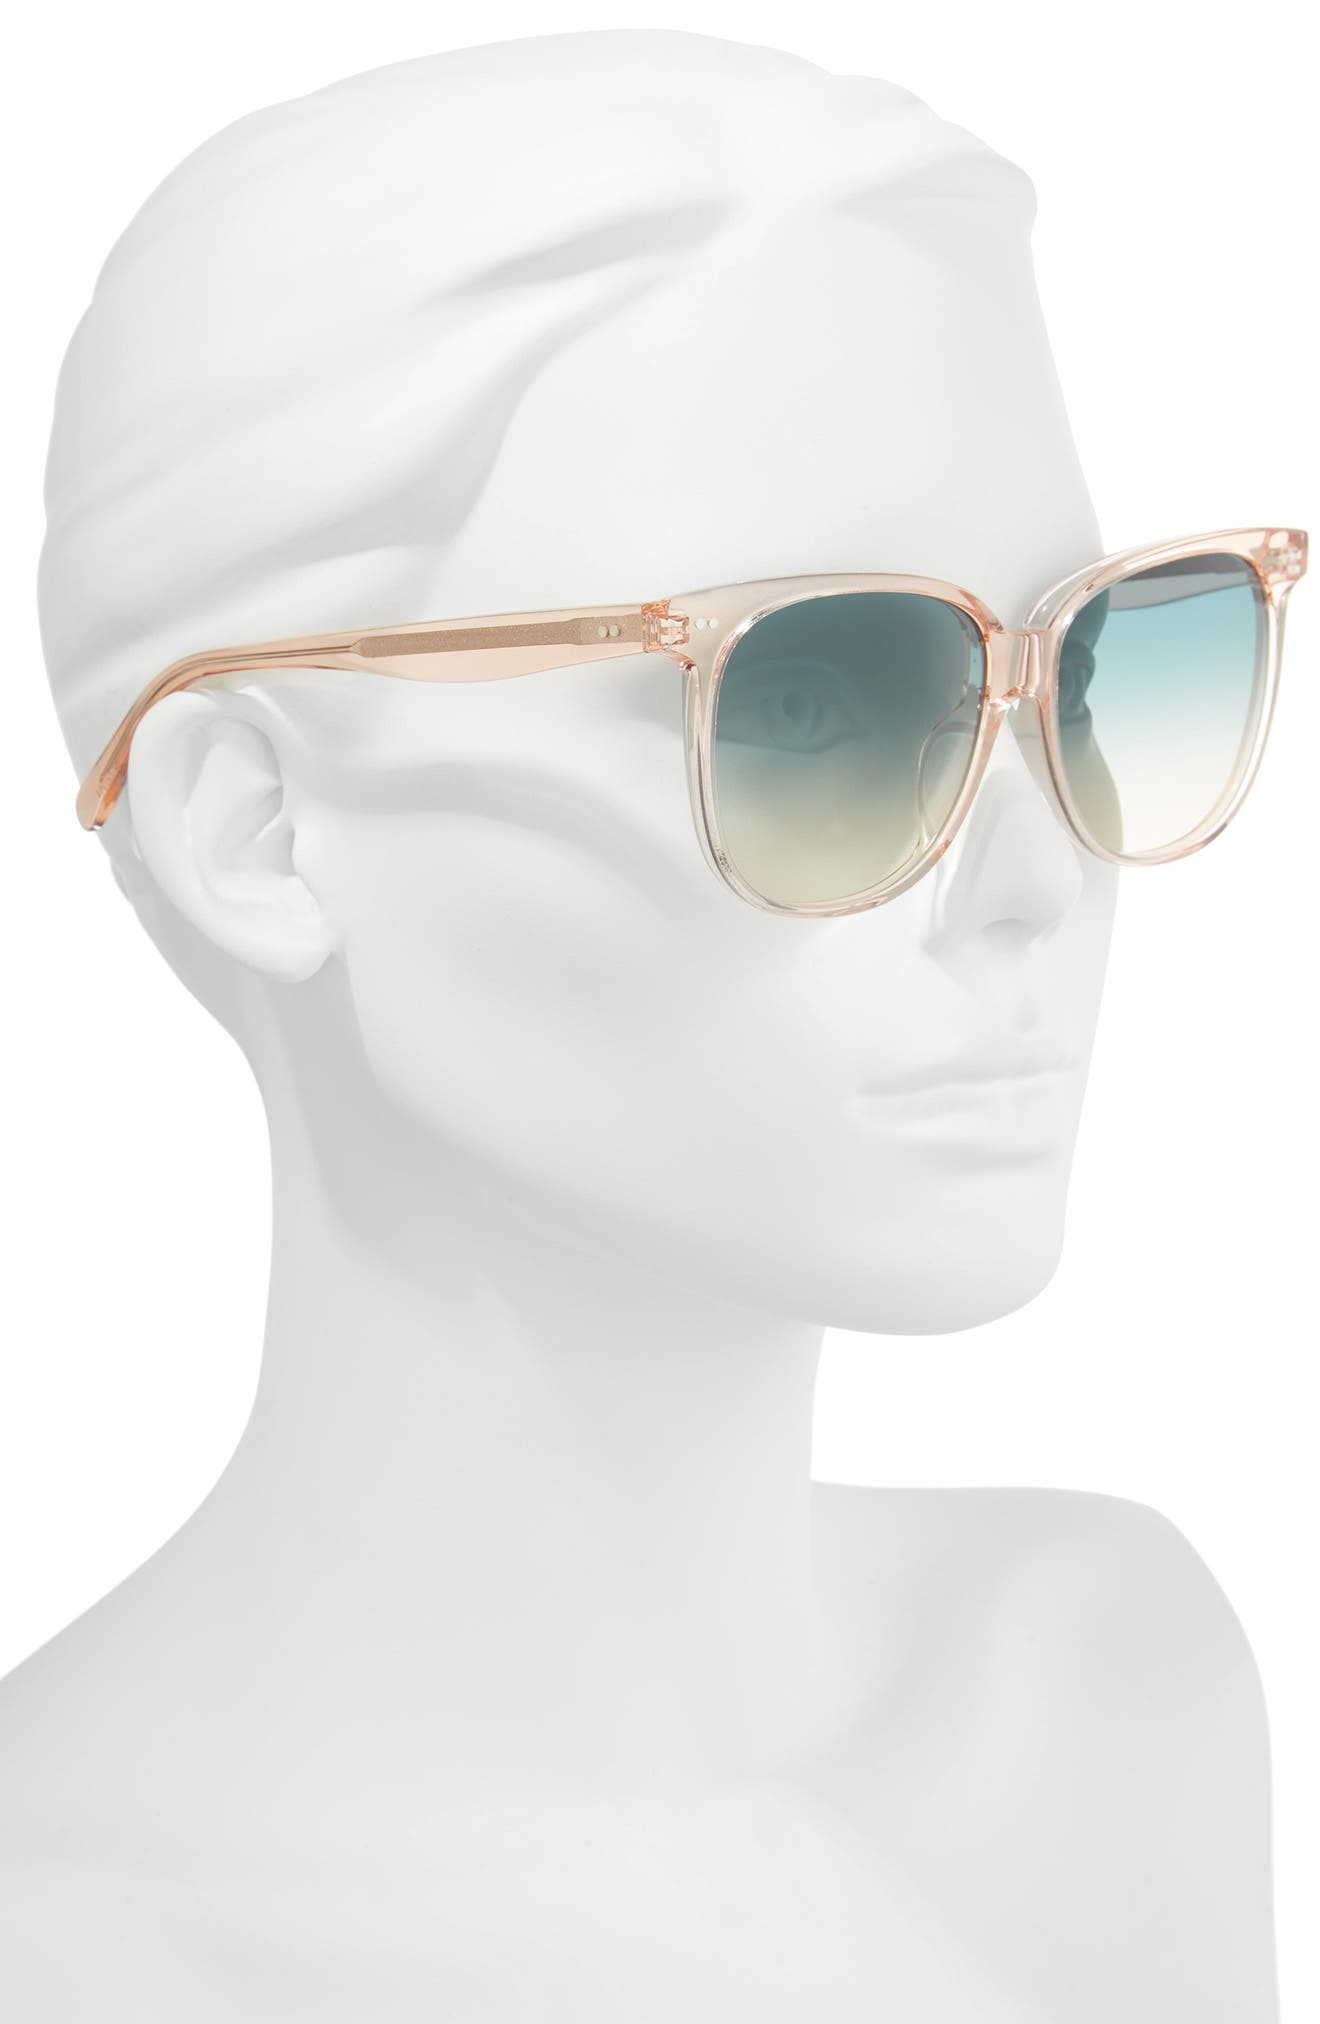 Special Fit 58mm Square Sunglasses,                             Alternate thumbnail 2, color,                             Baby Pink/ Turquoise